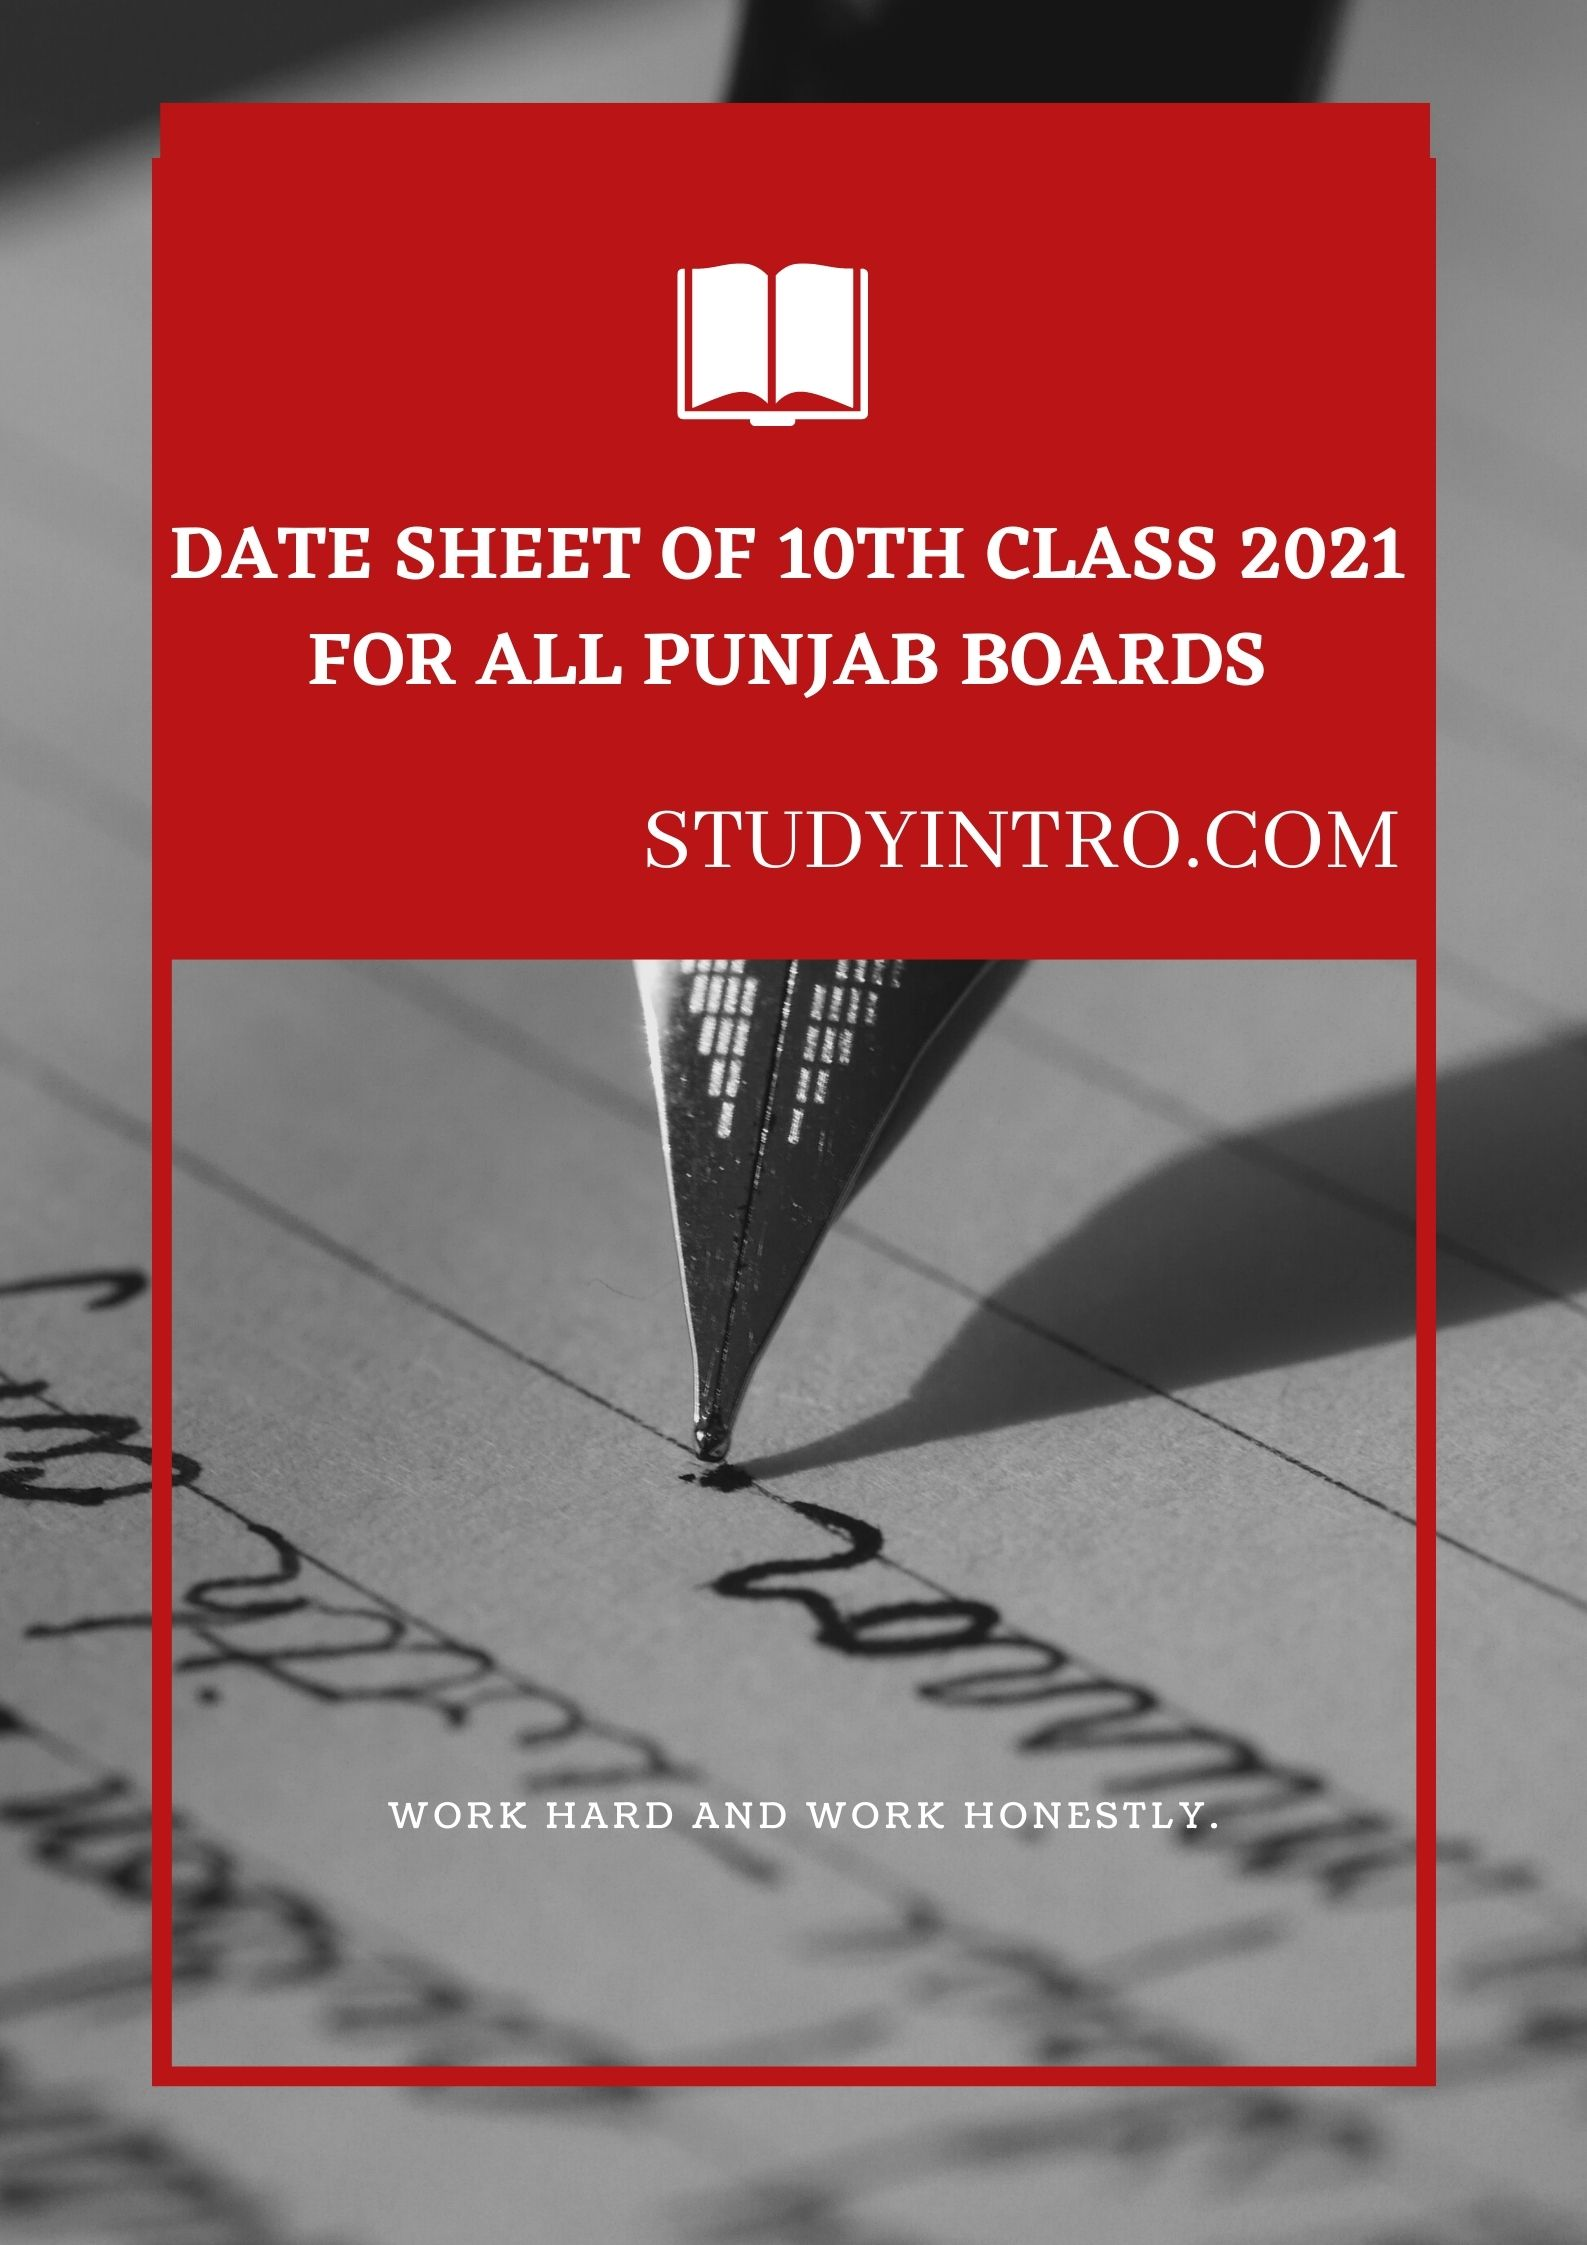 Date Sheet for 10th Class for all Punjab Boards